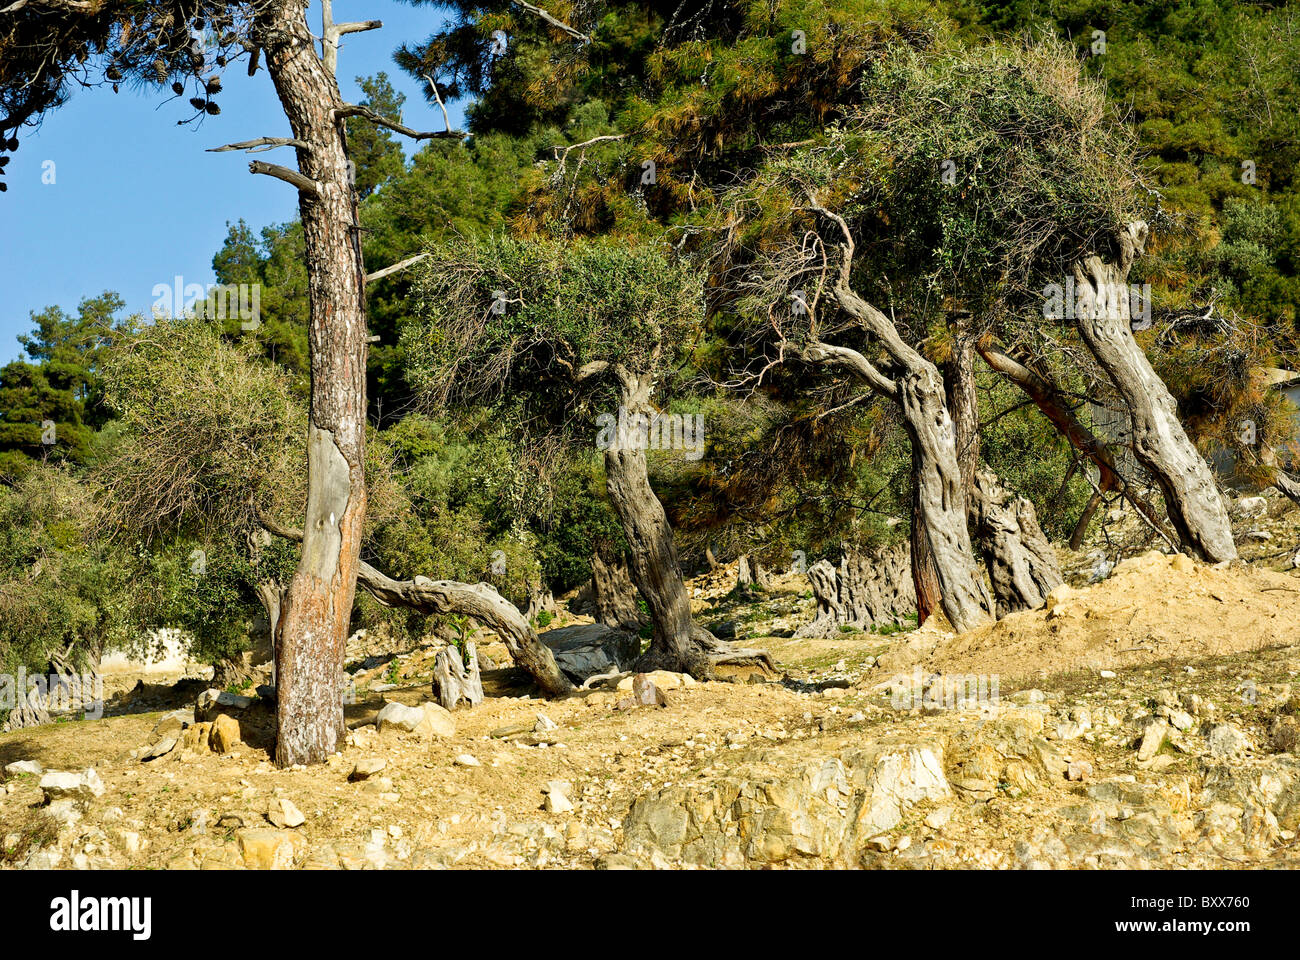 Centuries-old olive tree on the island of Thassos Greece Stock Photo